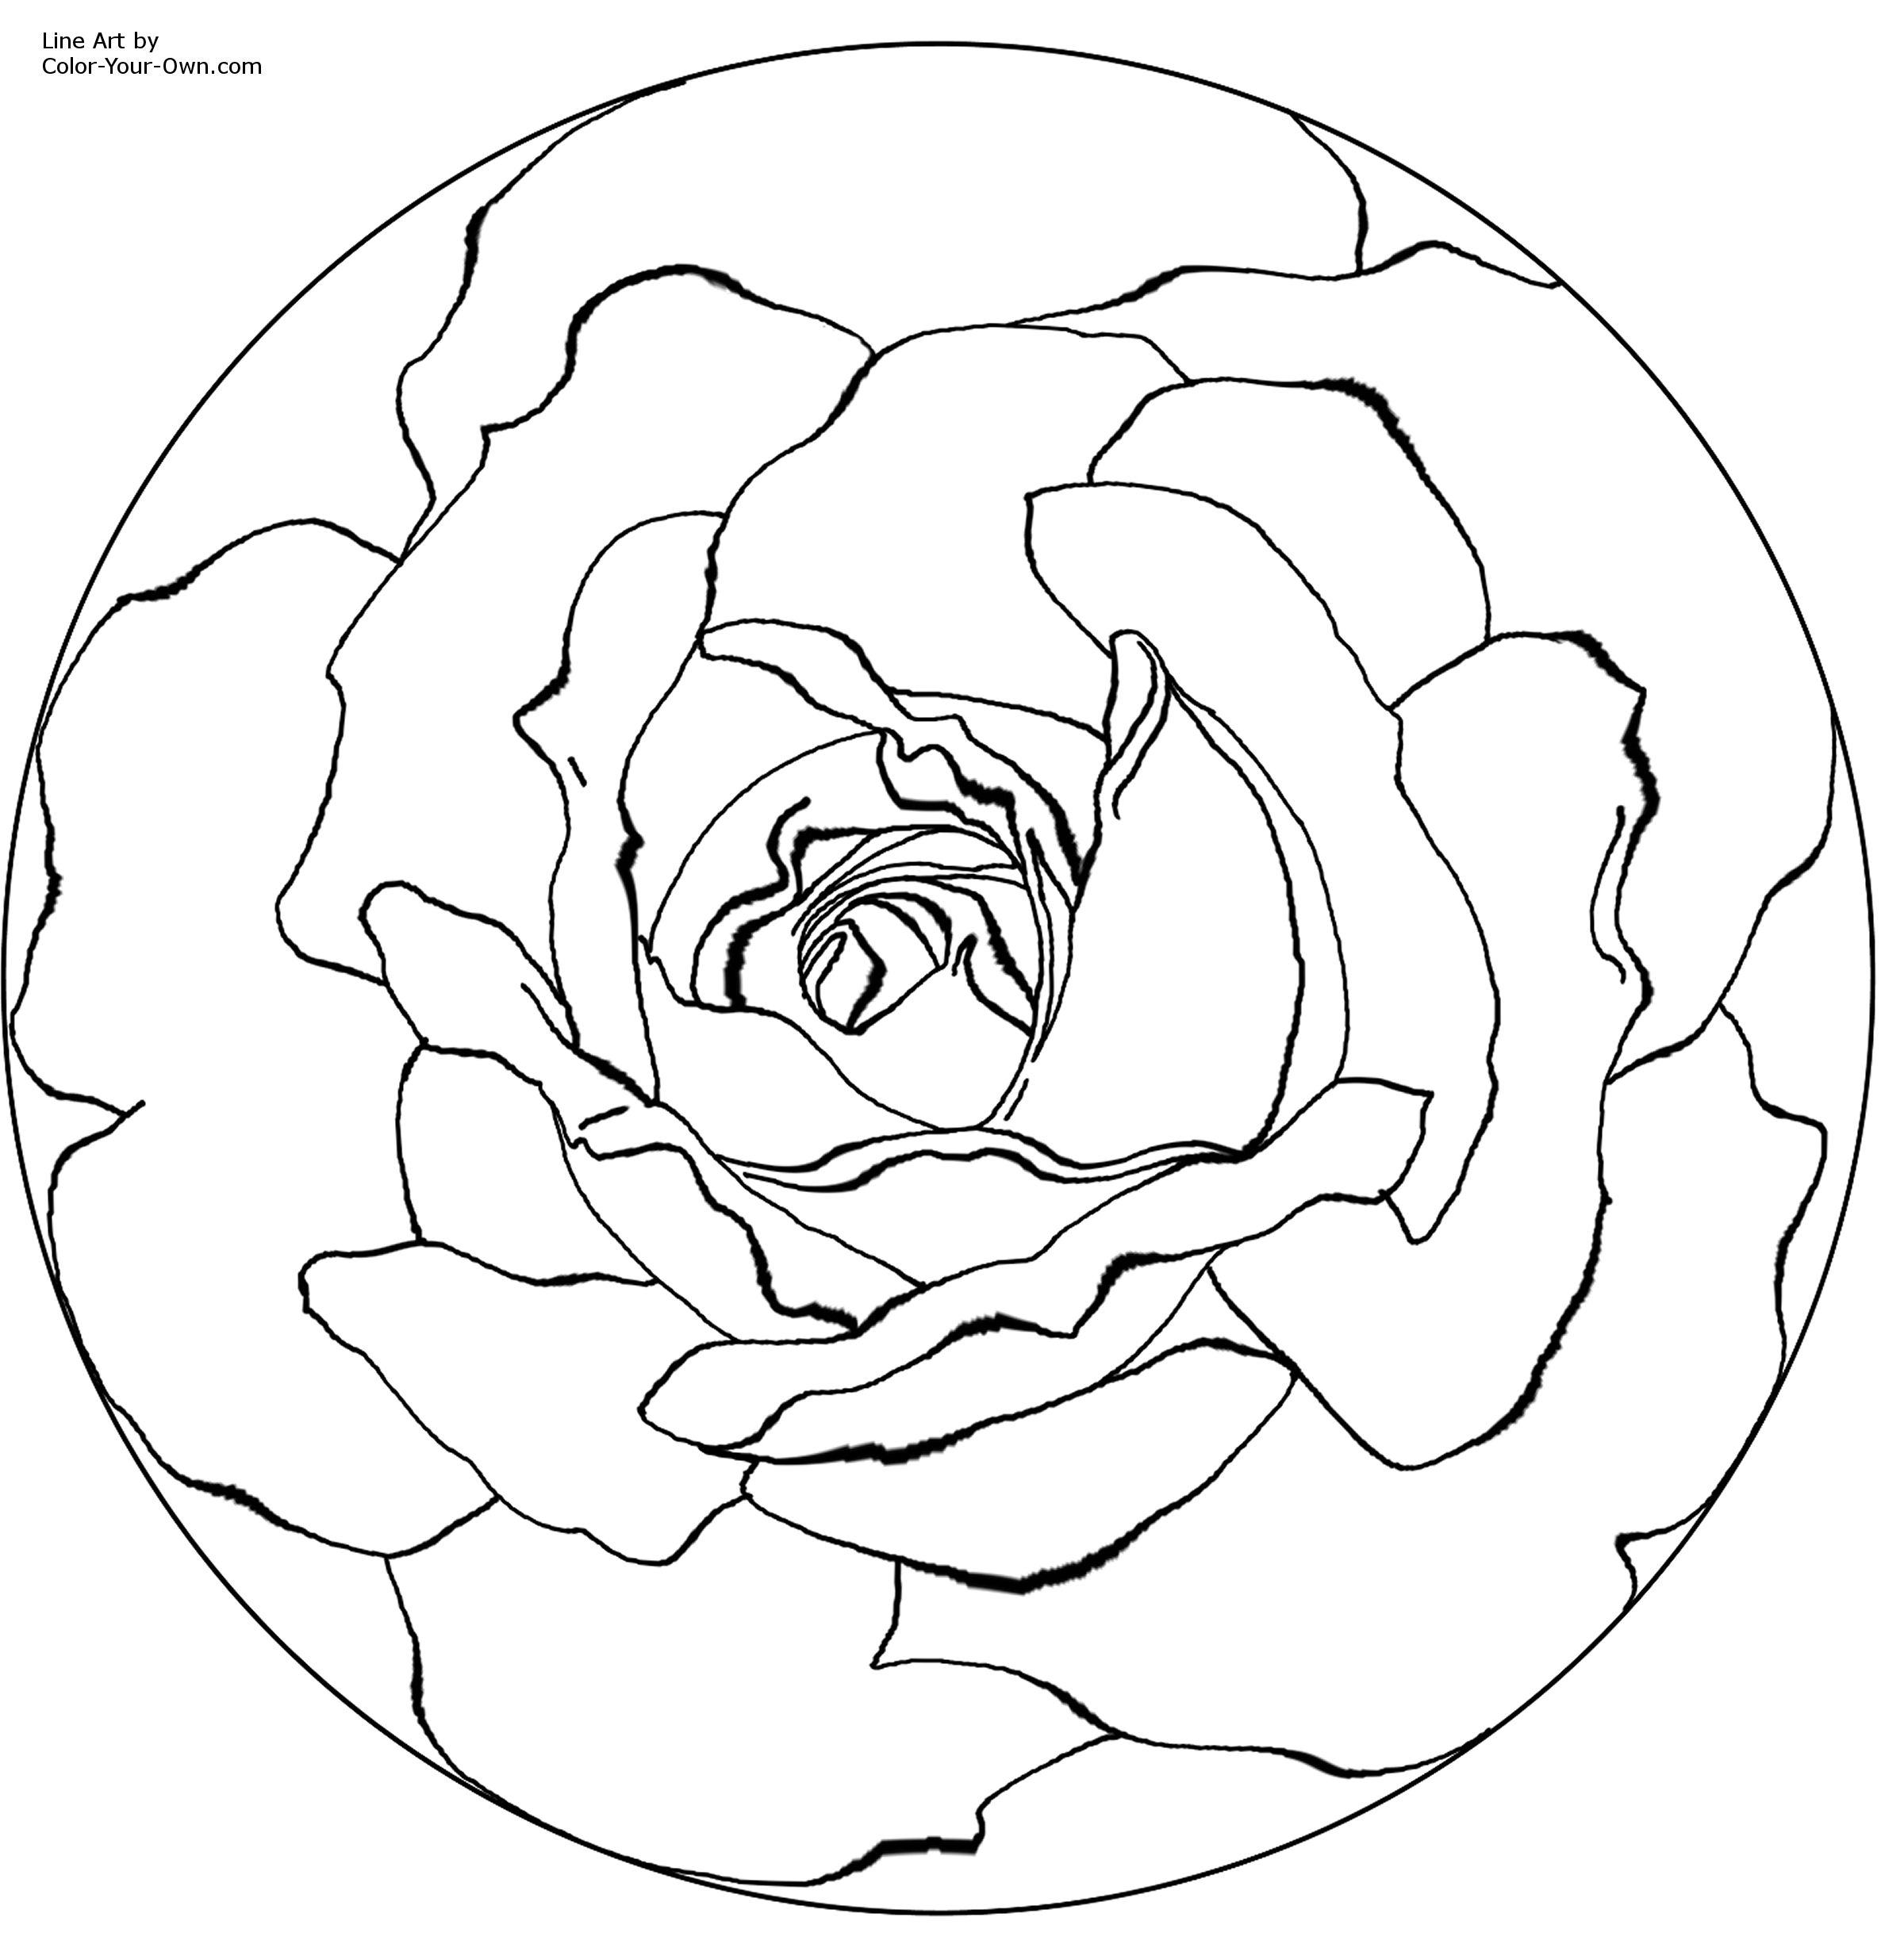 Colouring in pages dental - Colouring In Sheets Dental Mandala Coloring Pages Free Coloring Pages 63 Pictures Photos Download